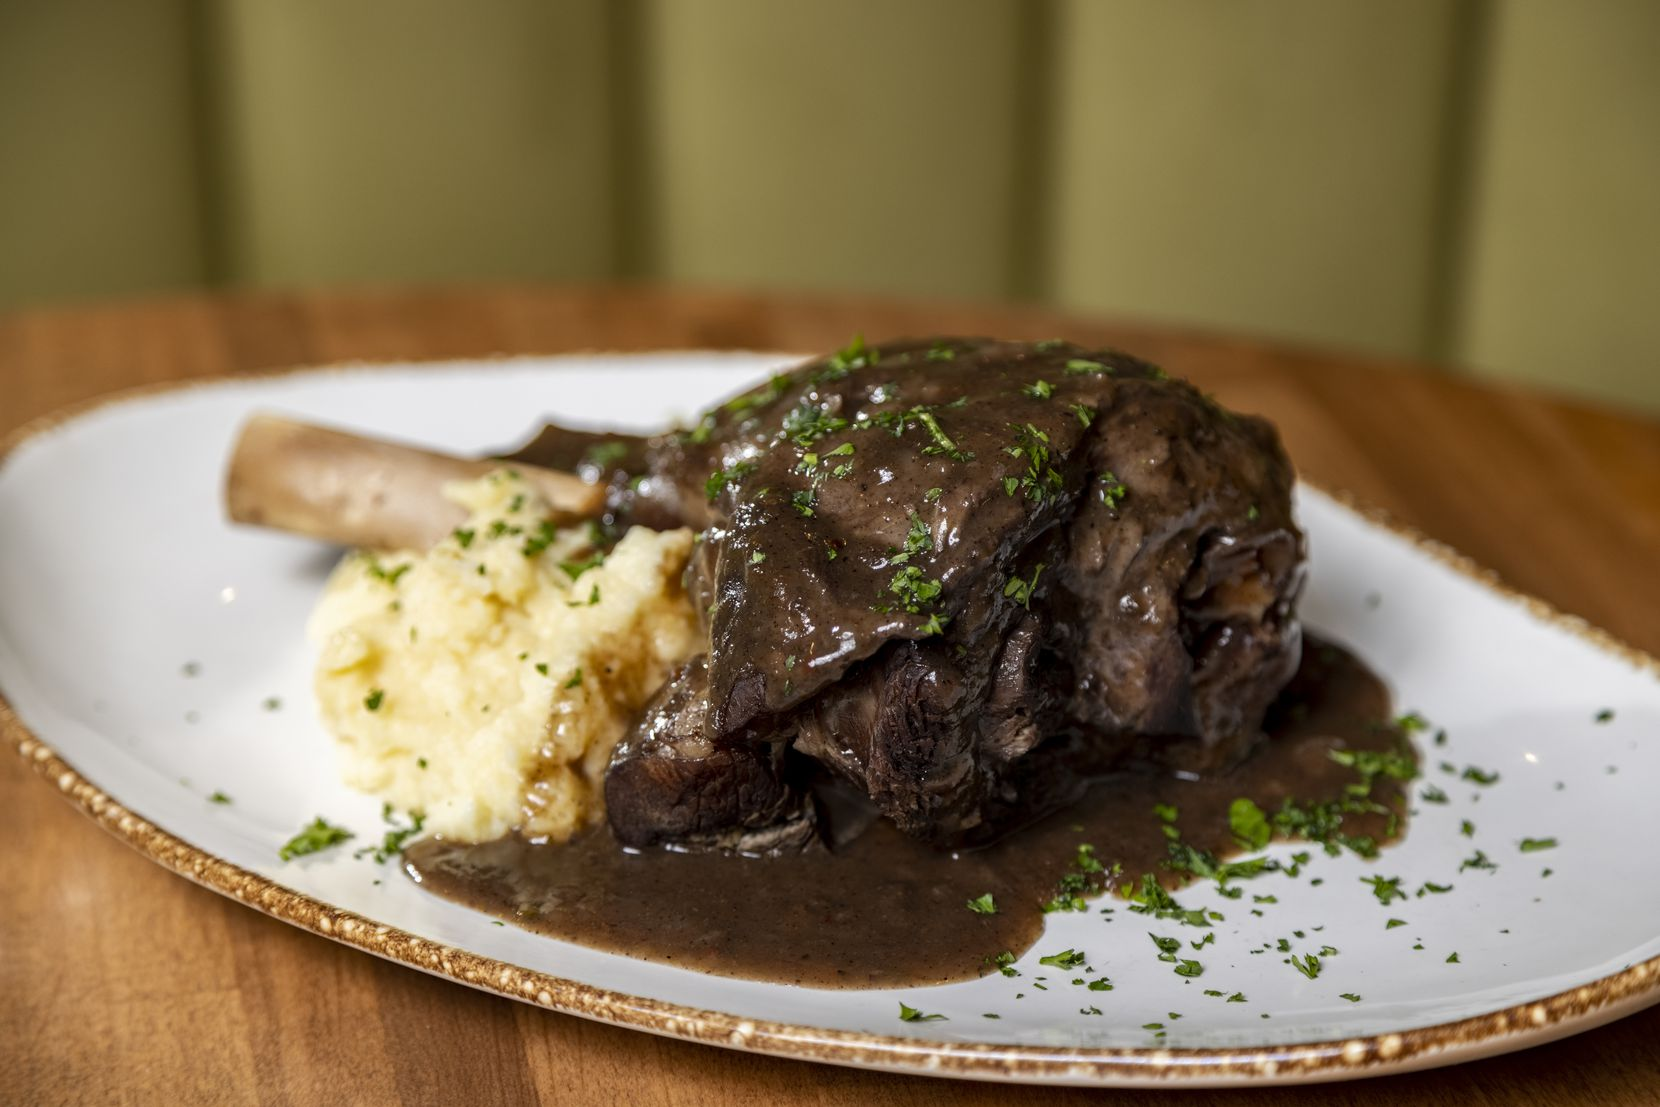 Jerk Roasted Lamb Shank with mashed potatoes at Pangea Restaurant in Garland